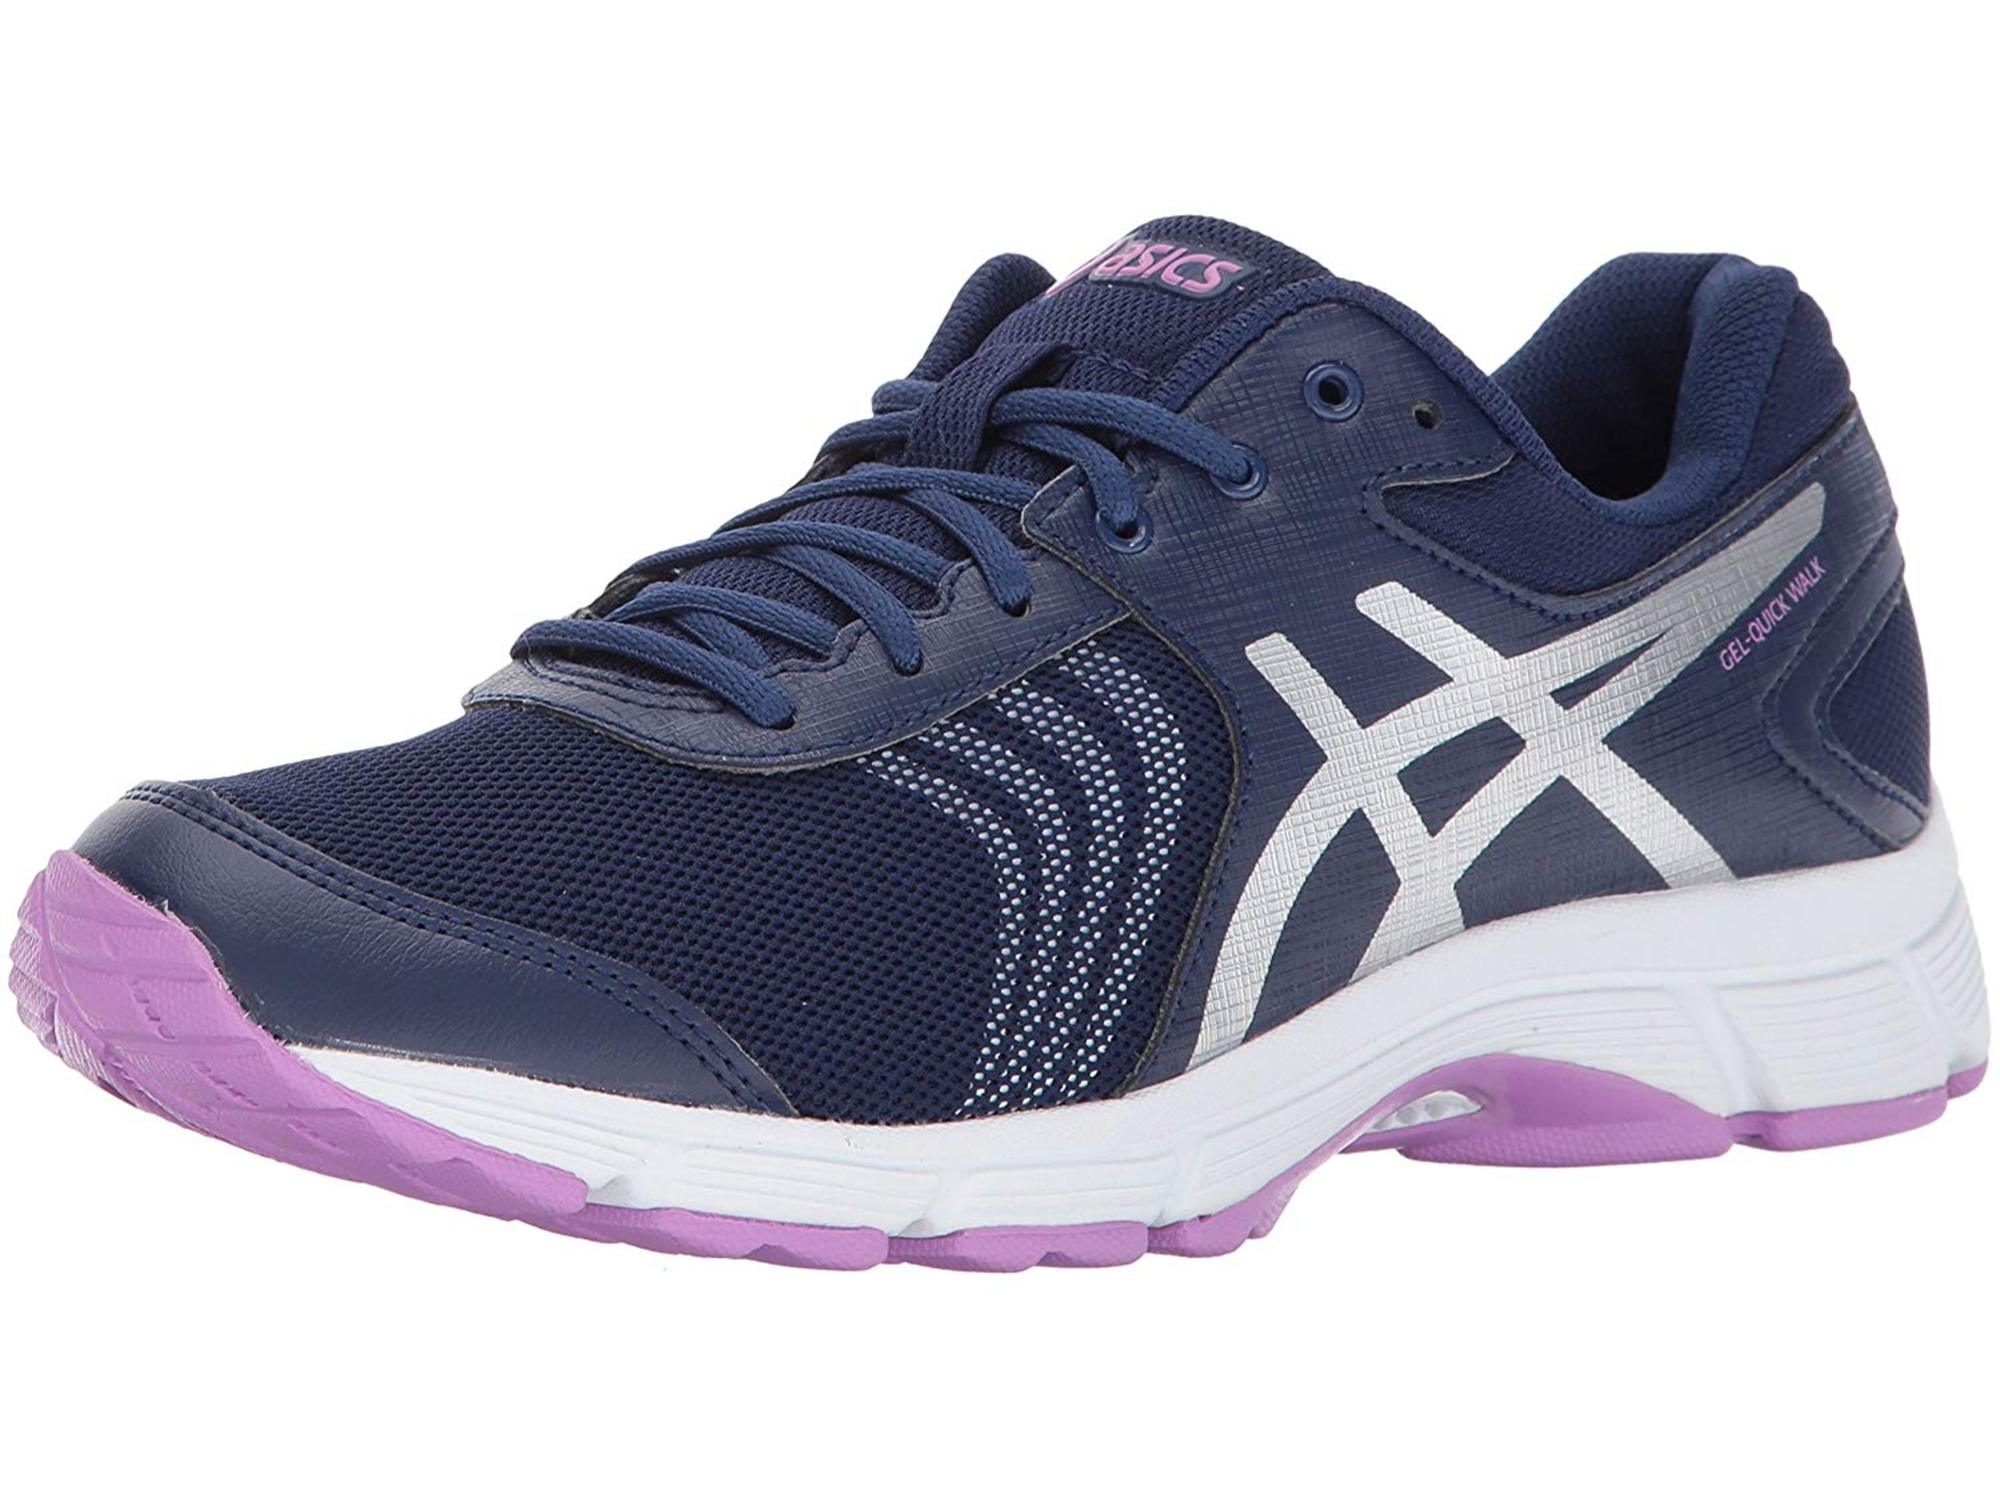 ASICS Asics Womens Gel Quickwalk 3 Walking Shoe, Indigo BlueSilverViolet, Size 11.0